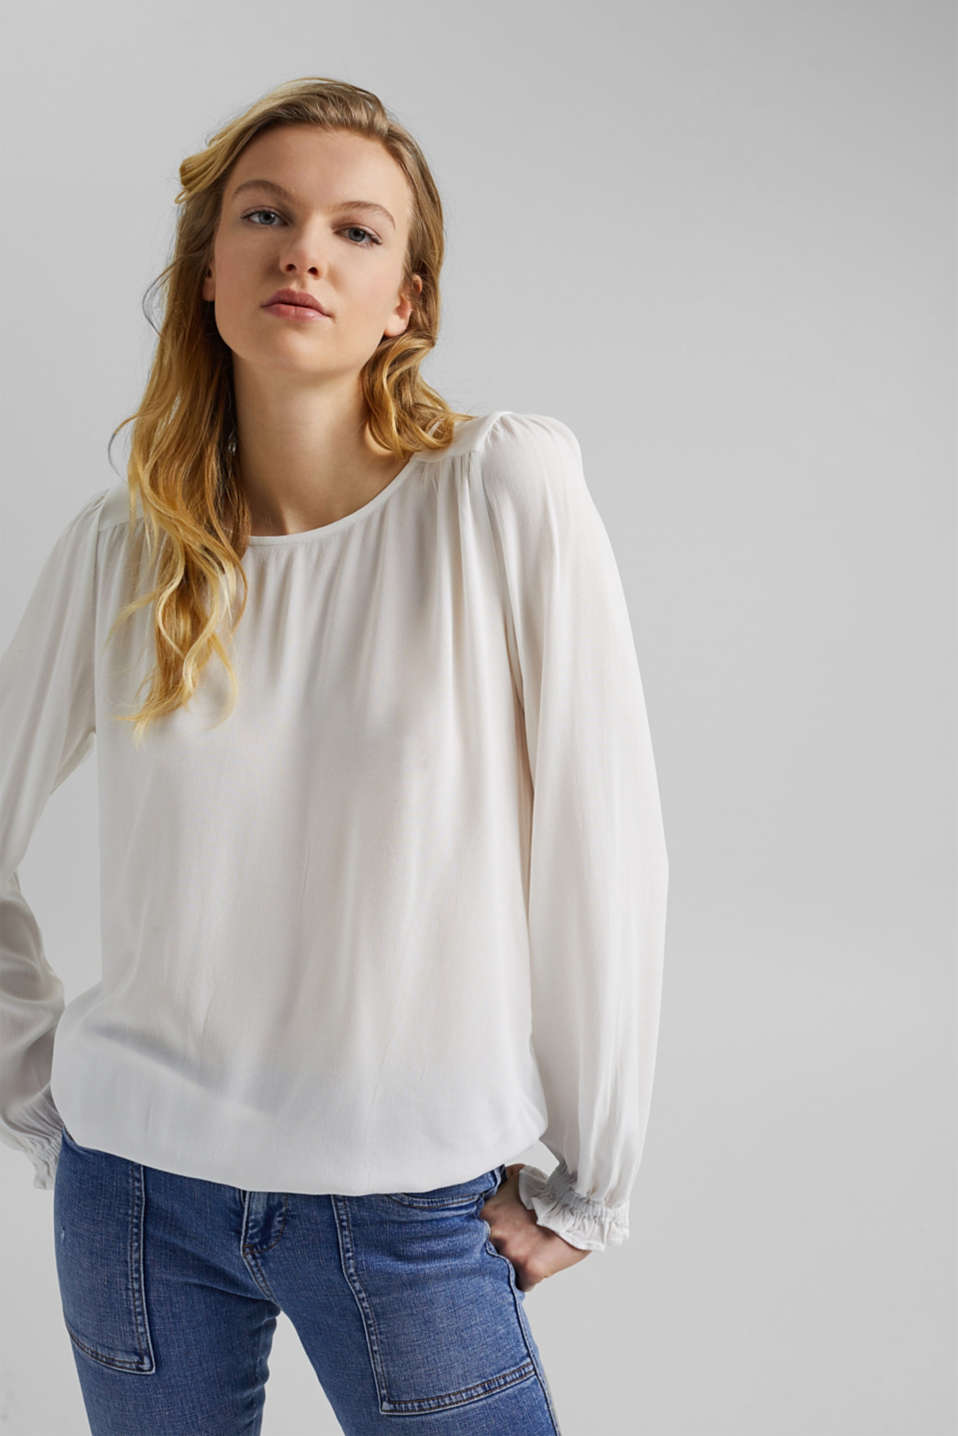 edc - Dainty blouse made of LENZING™ ECOVERO™